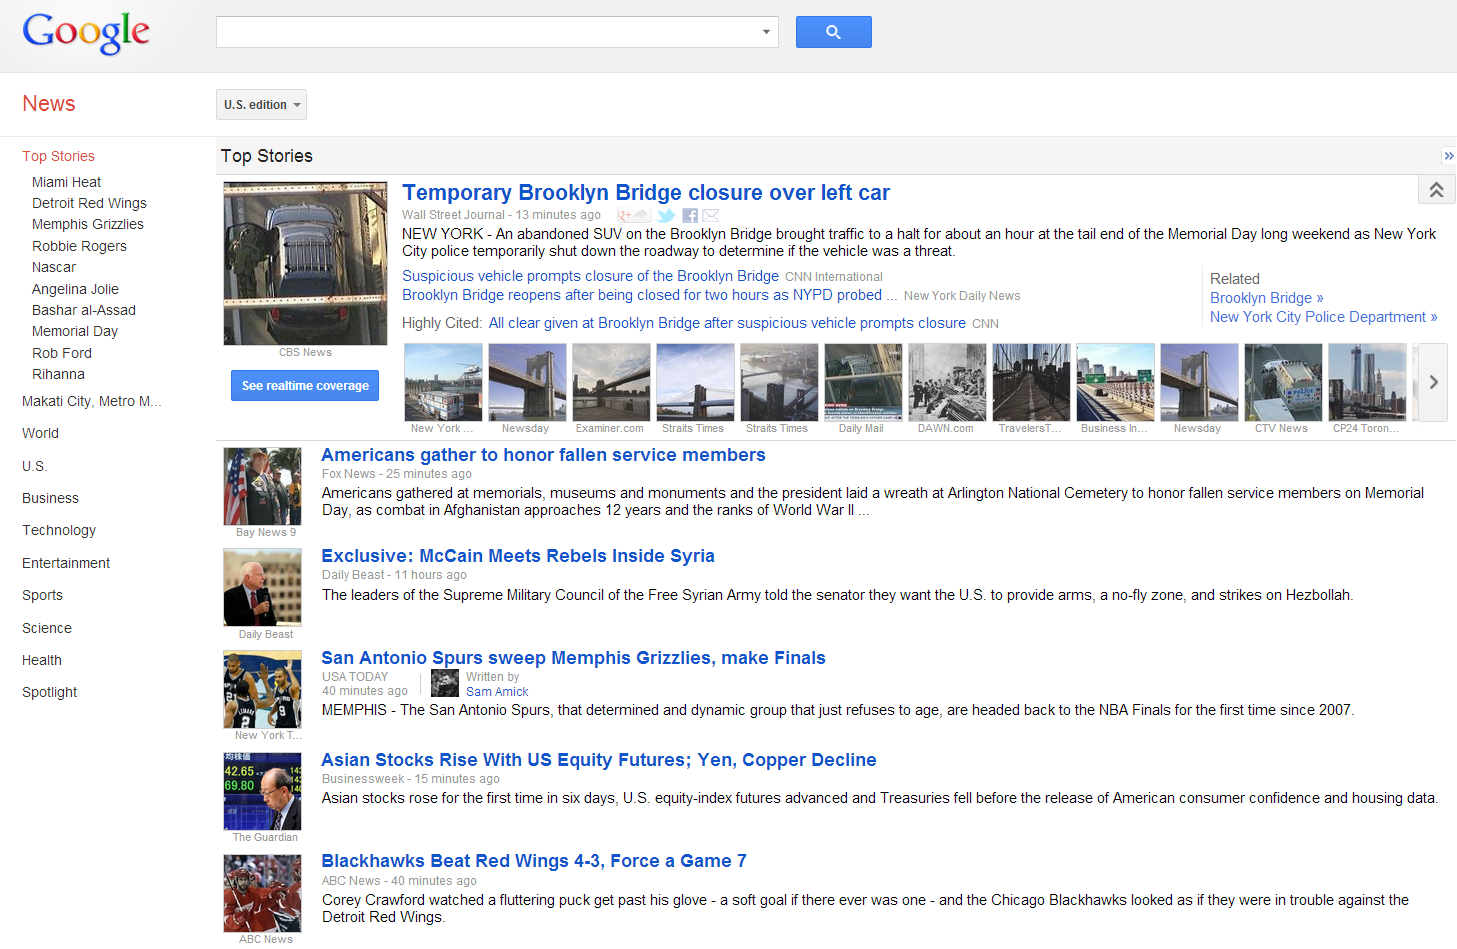 how-to-get-your-company-featured-on-google-news-post